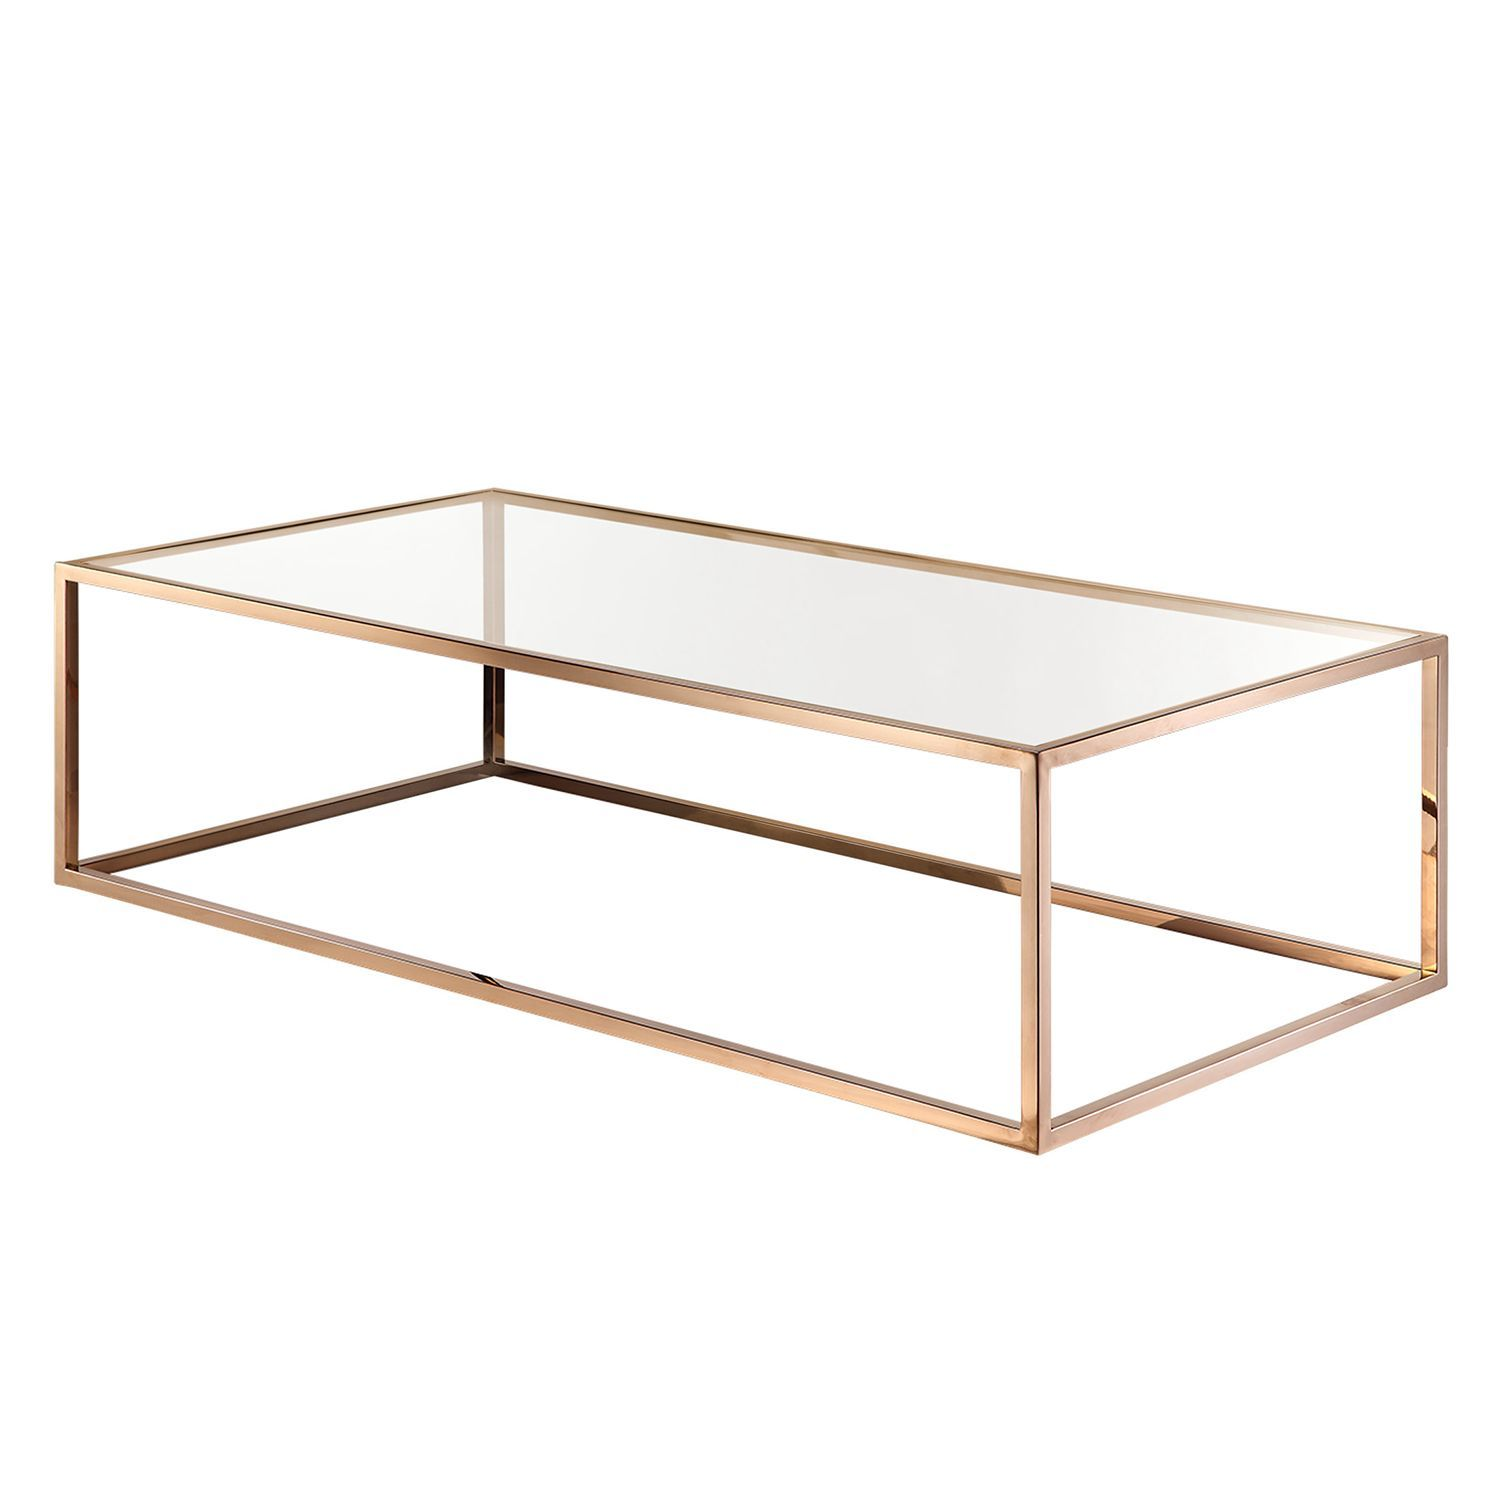 Couchtisch Gold Eckig - Couchtisch Jacob Products Table Furniture Und Home Decor